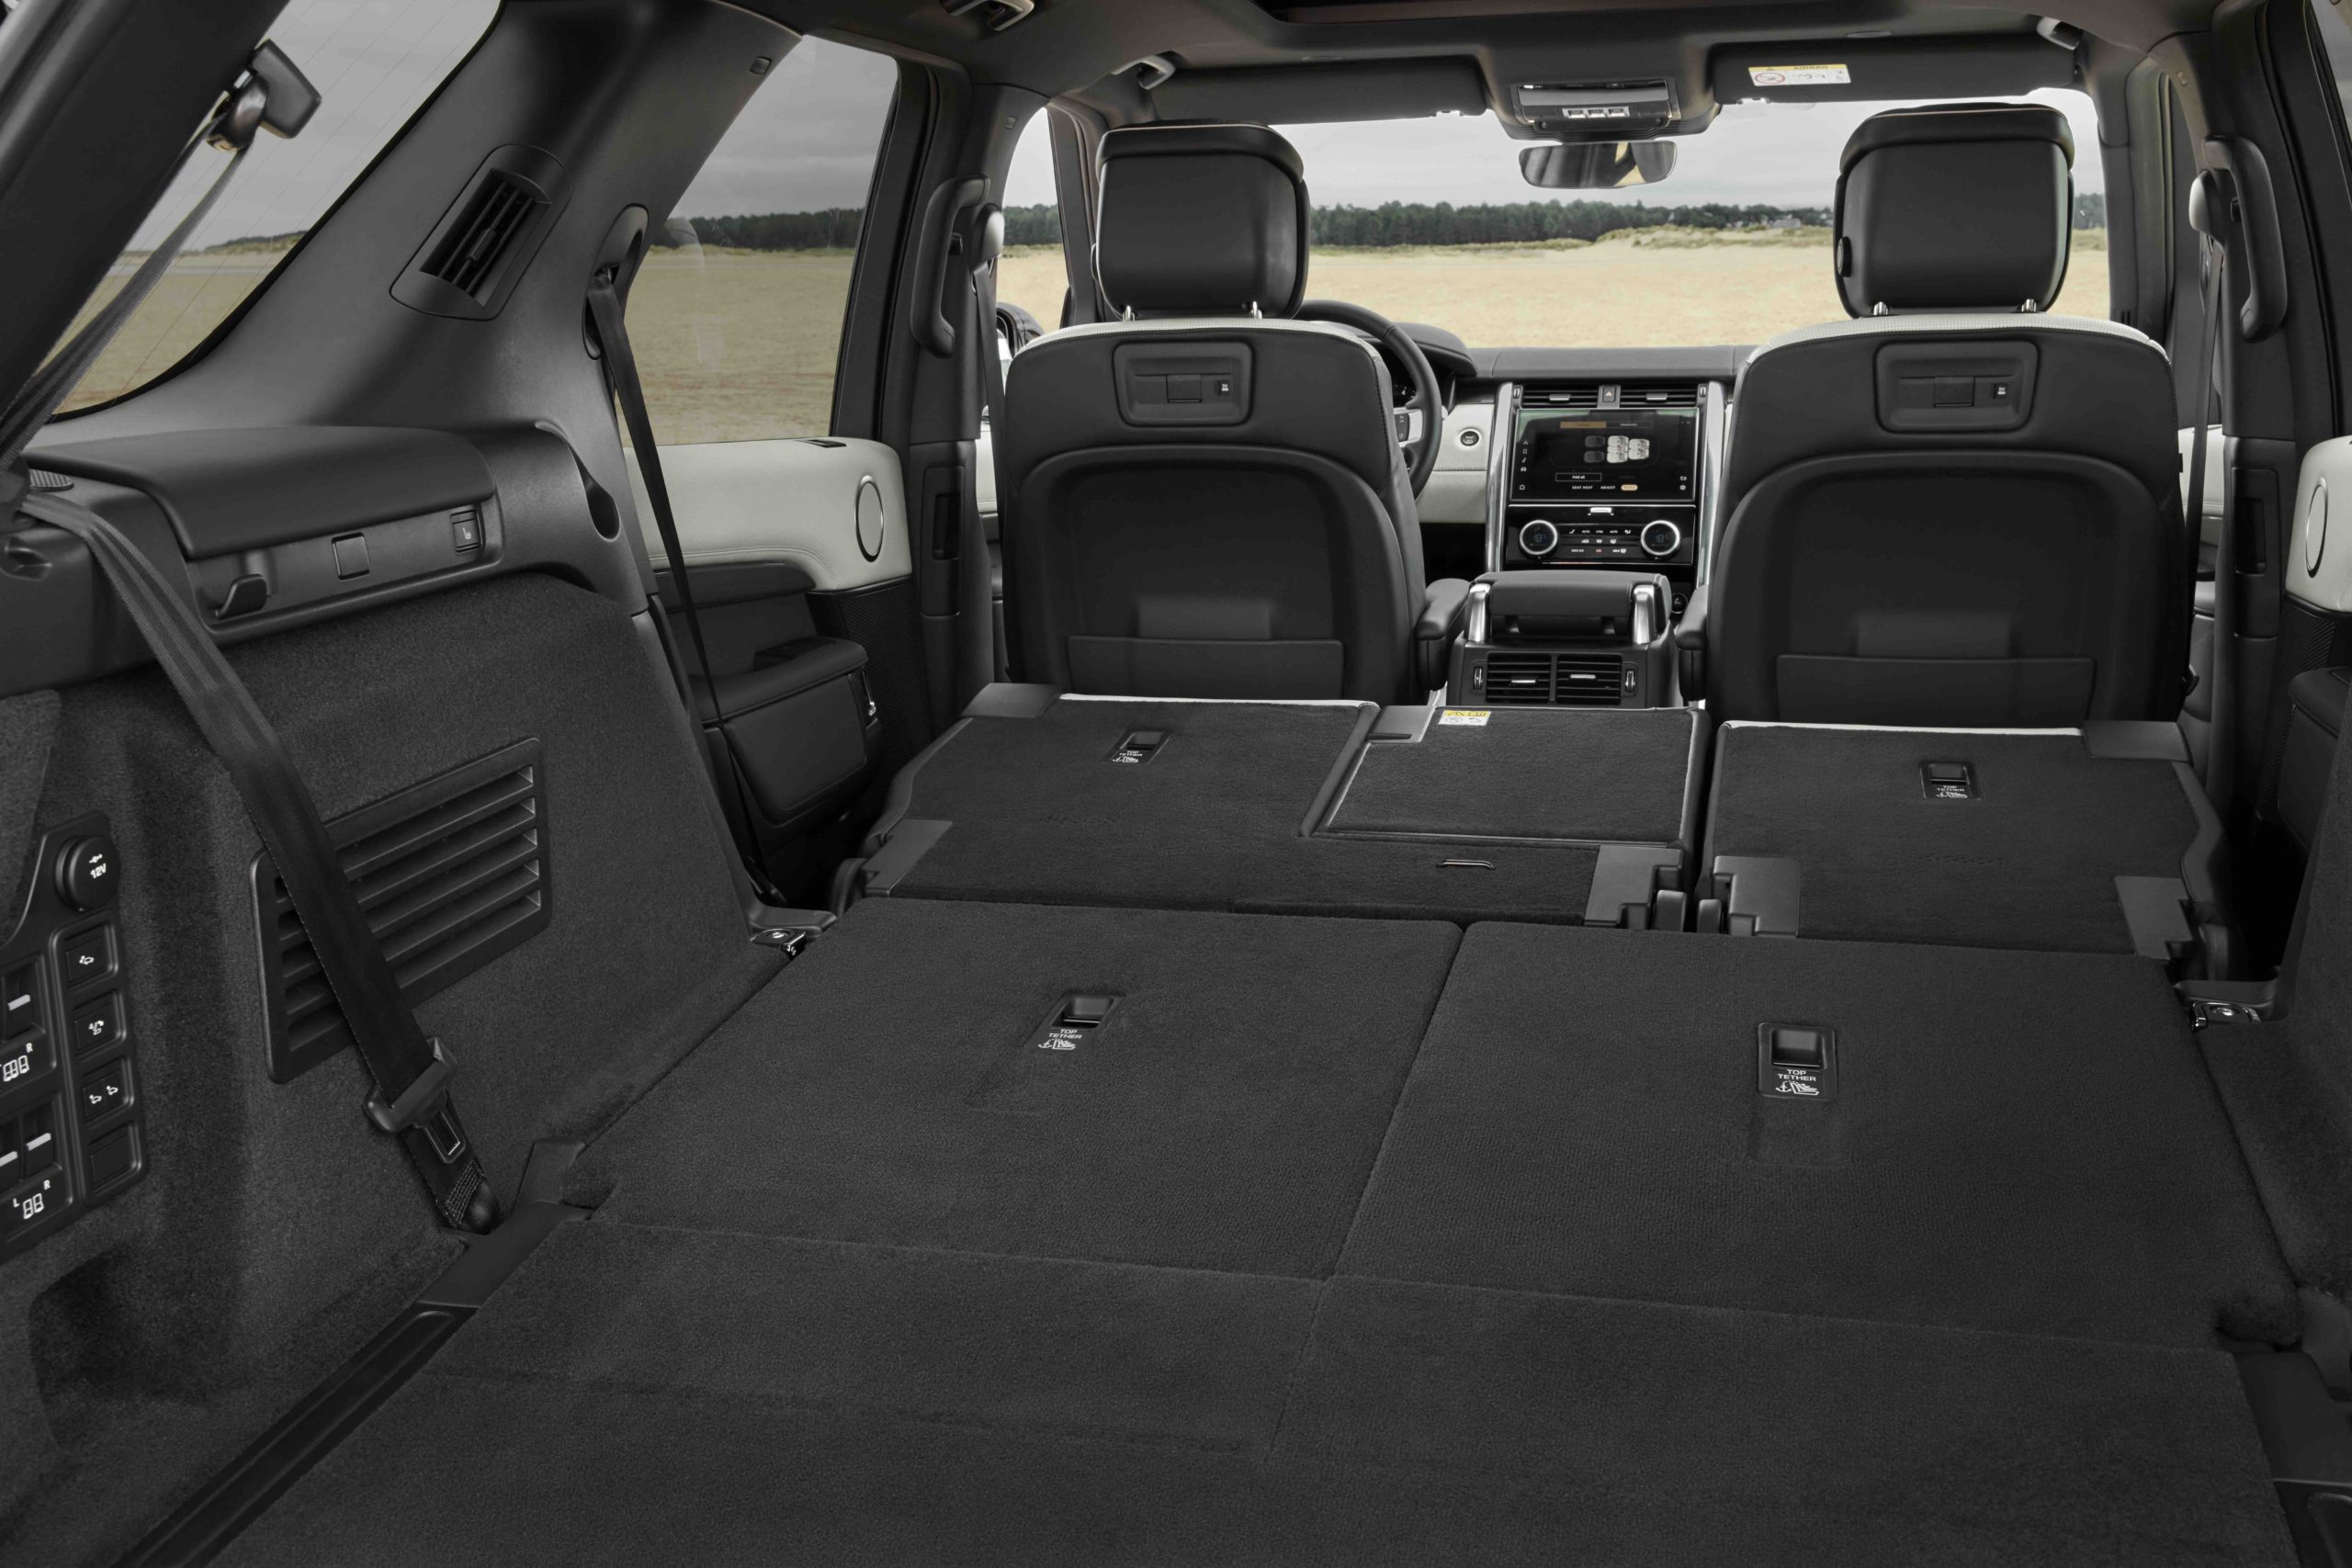 2021 Land Rover Discovery lay flat seats